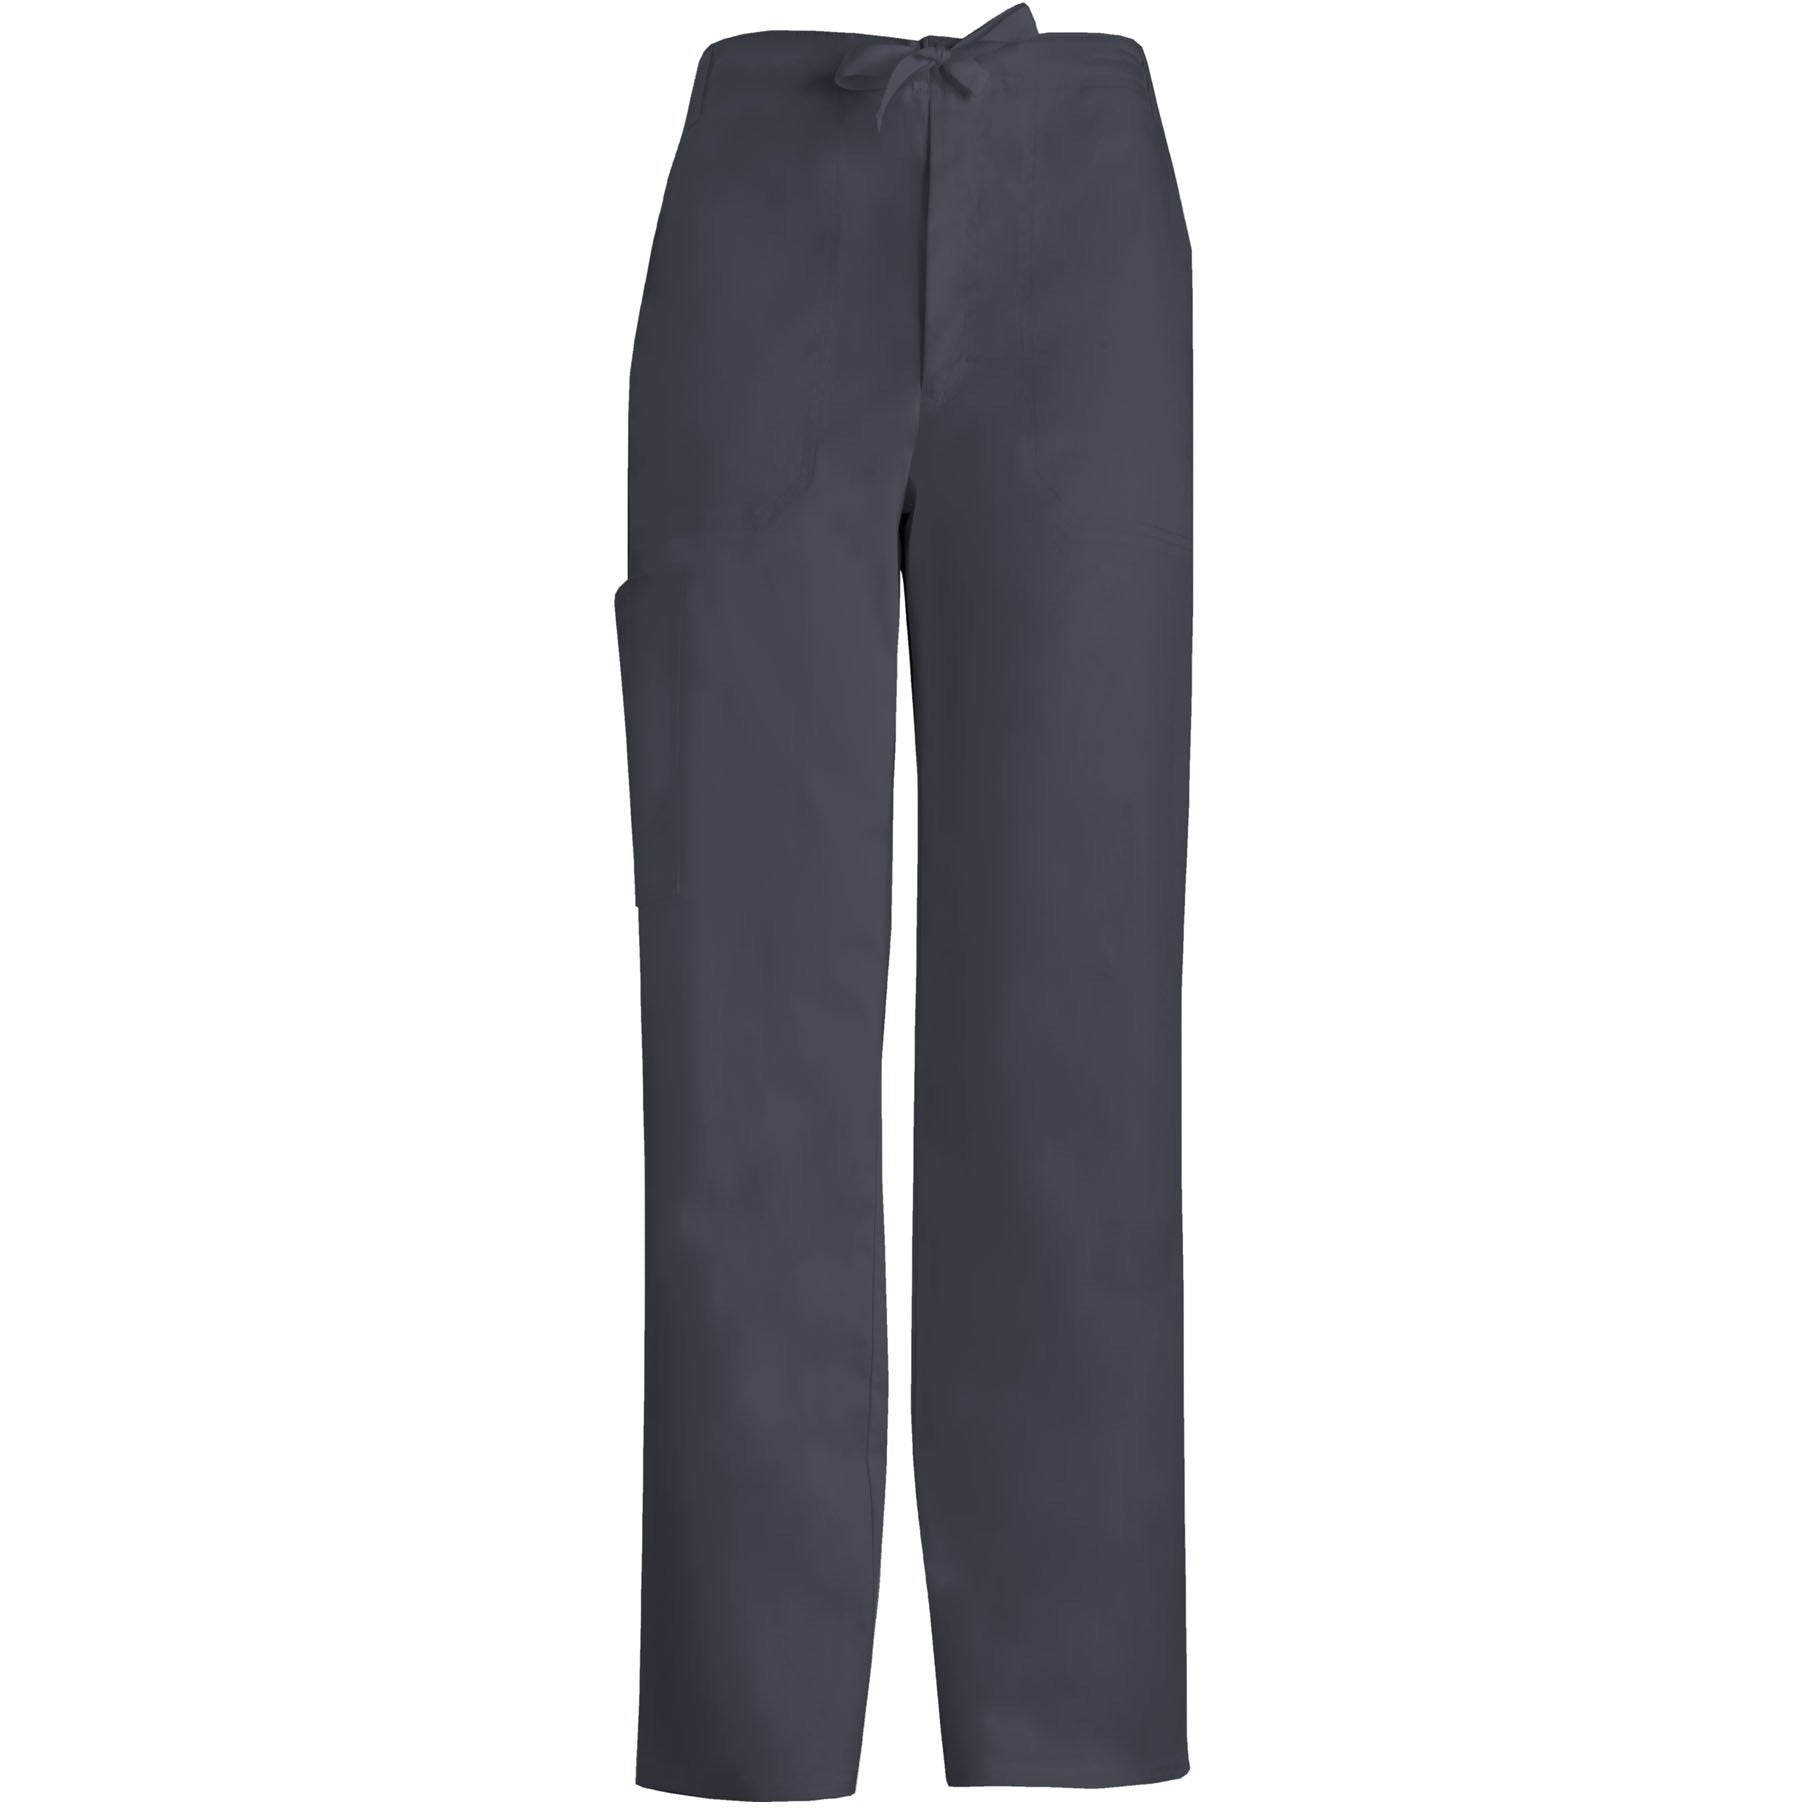 Men's Fly Front Drawstring Pant 1022 INSEAM 31''